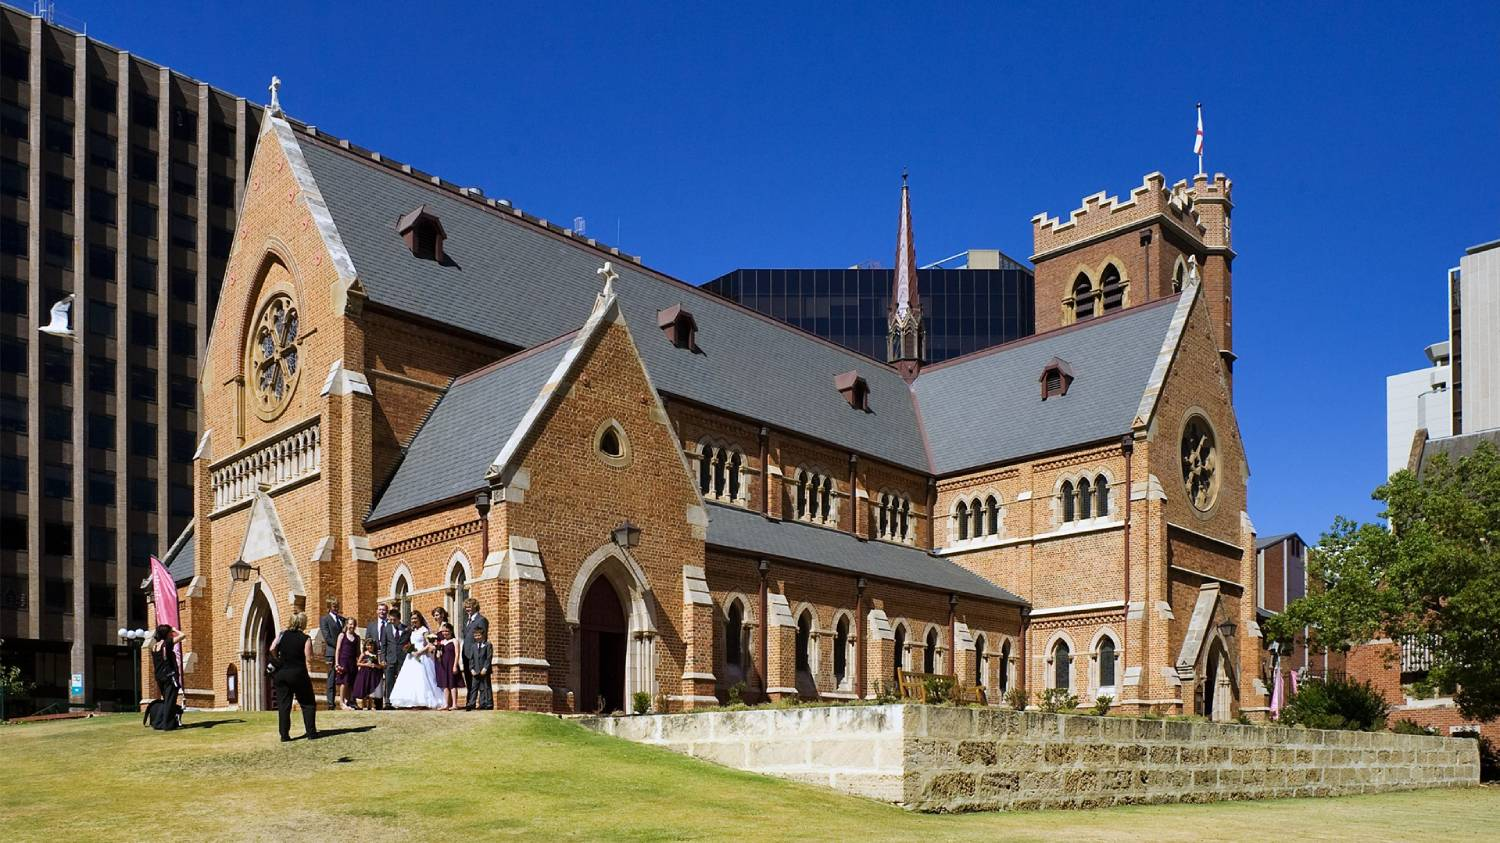 Saint George's Cathedral - Things To Do In Perth